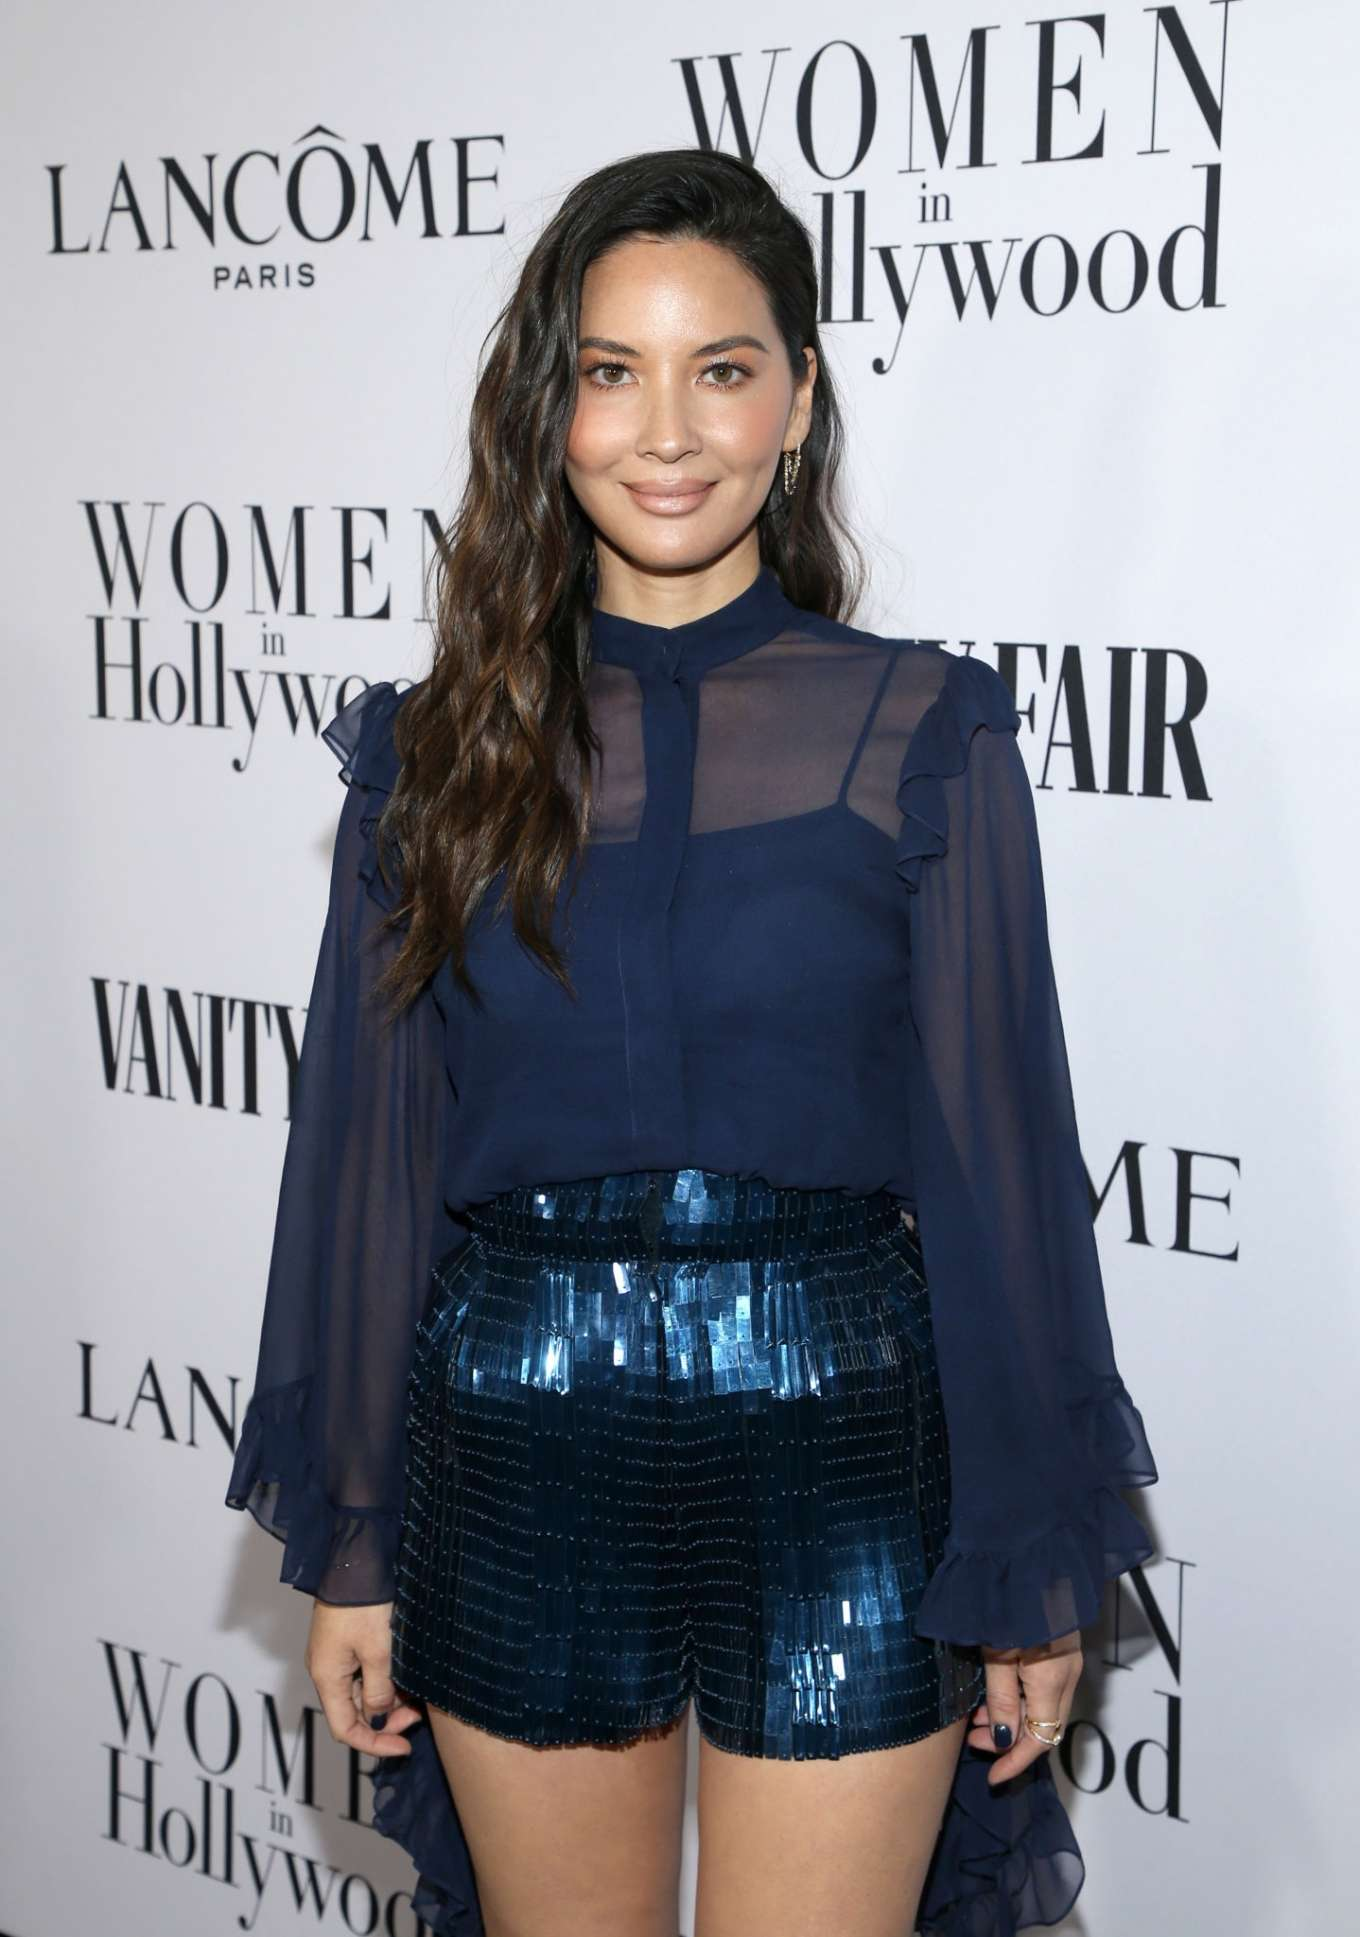 Olivia Munn sparkled in striking navy blue skinny shorts with a sequin material